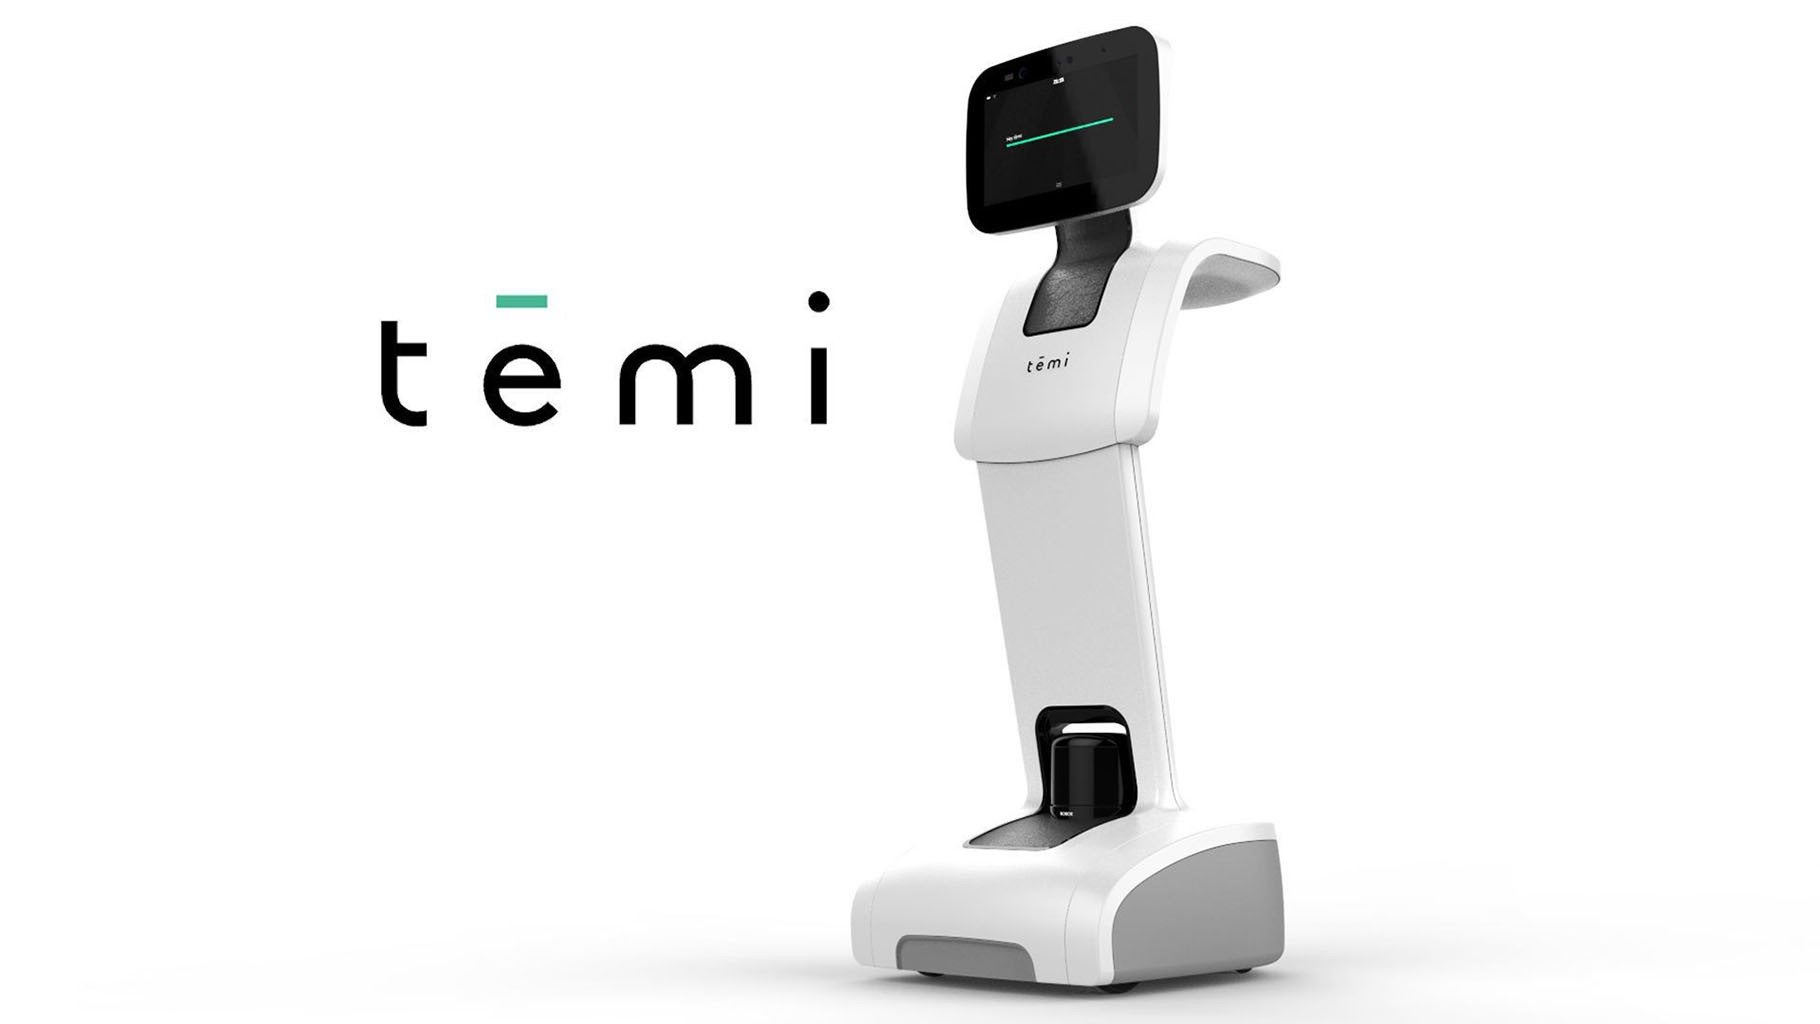 The word 'temi' next to a large, white, non-humanoid robot with wheels and a tablet on top.